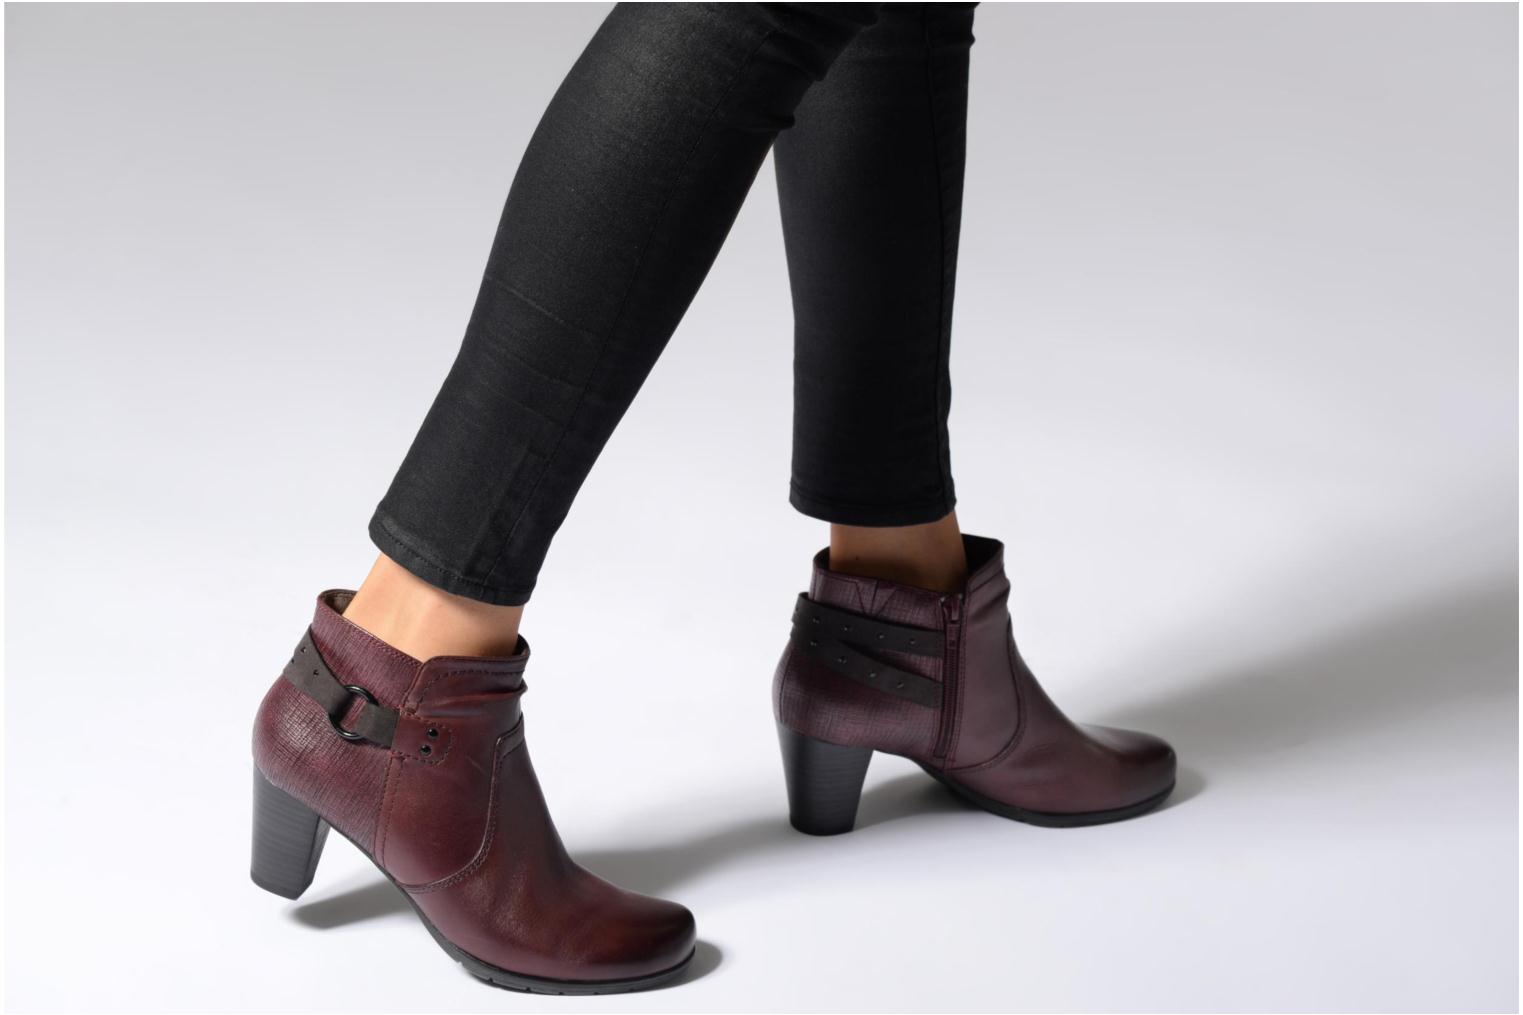 Shoes Douglas Bordeaux Shoes Jana Jana Douglas Shoes Bordeaux Jana gBqdwP